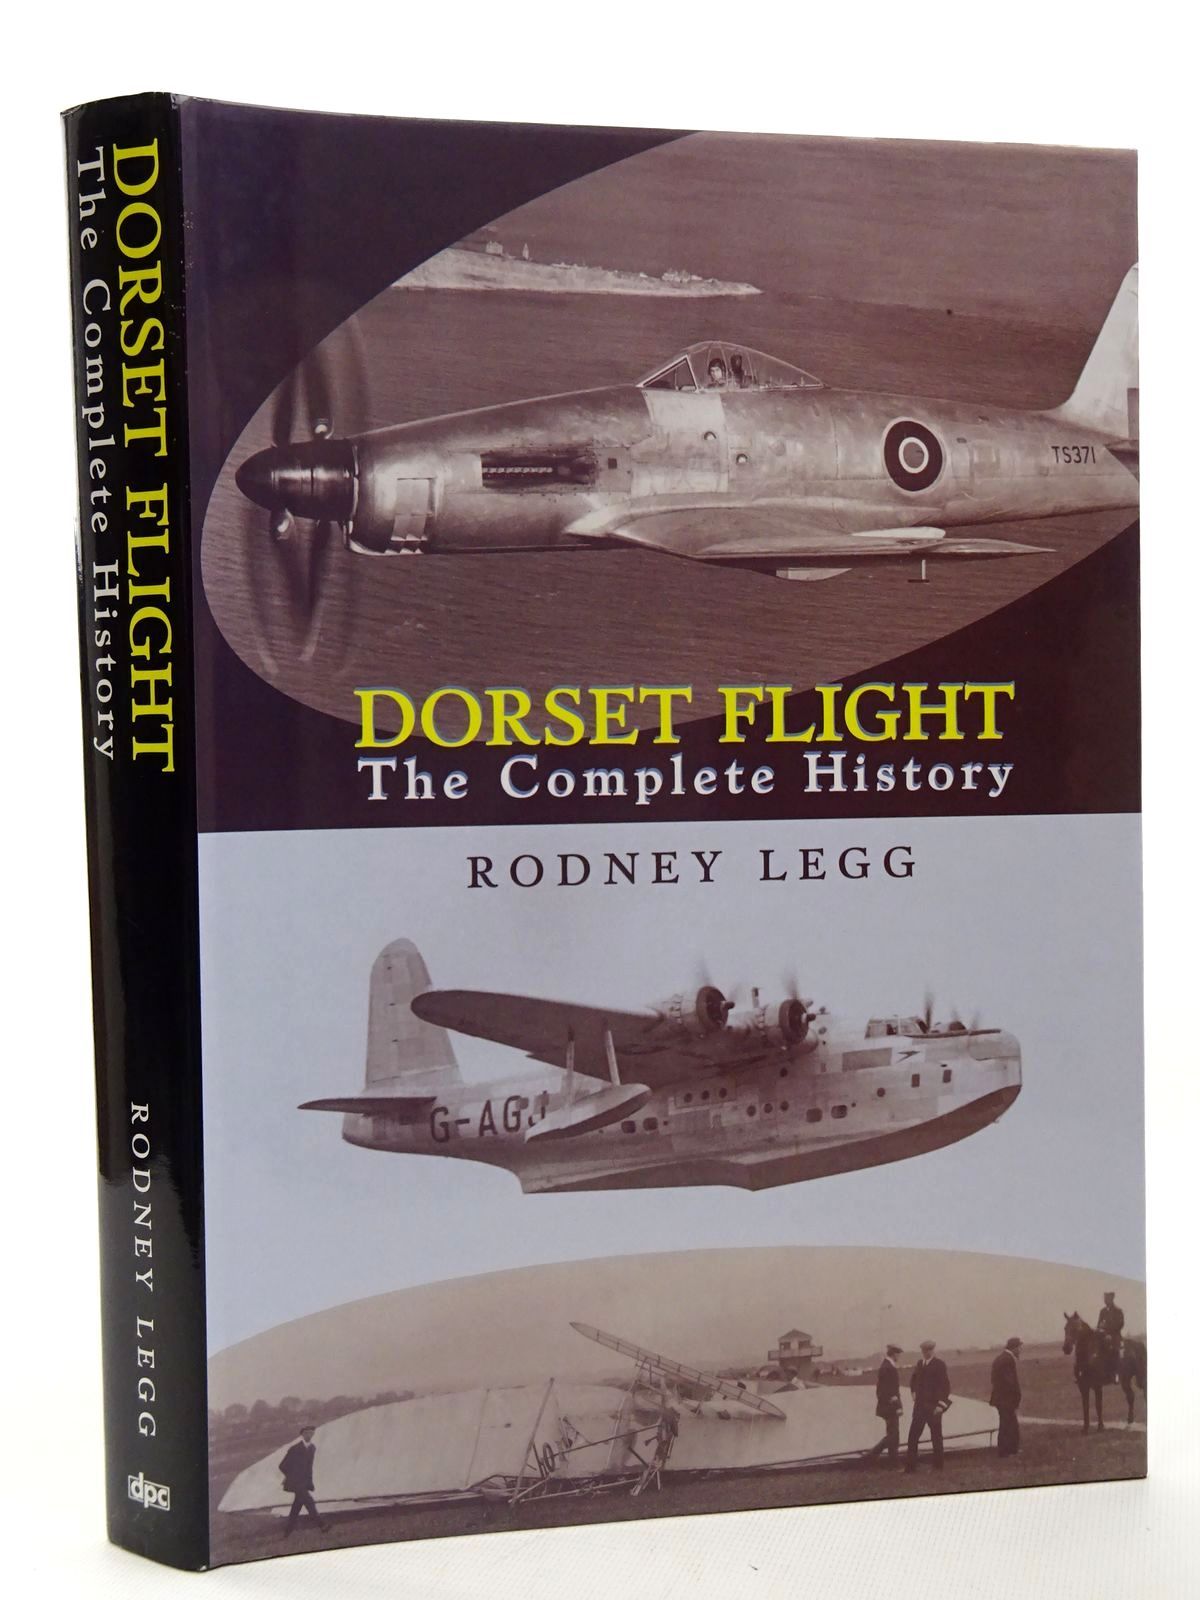 Photo of DORSET FLIGHT THE COMPLETE HISTORY written by Legg, Rodney published by Dorset Publishing Company (STOCK CODE: 1610169)  for sale by Stella & Rose's Books